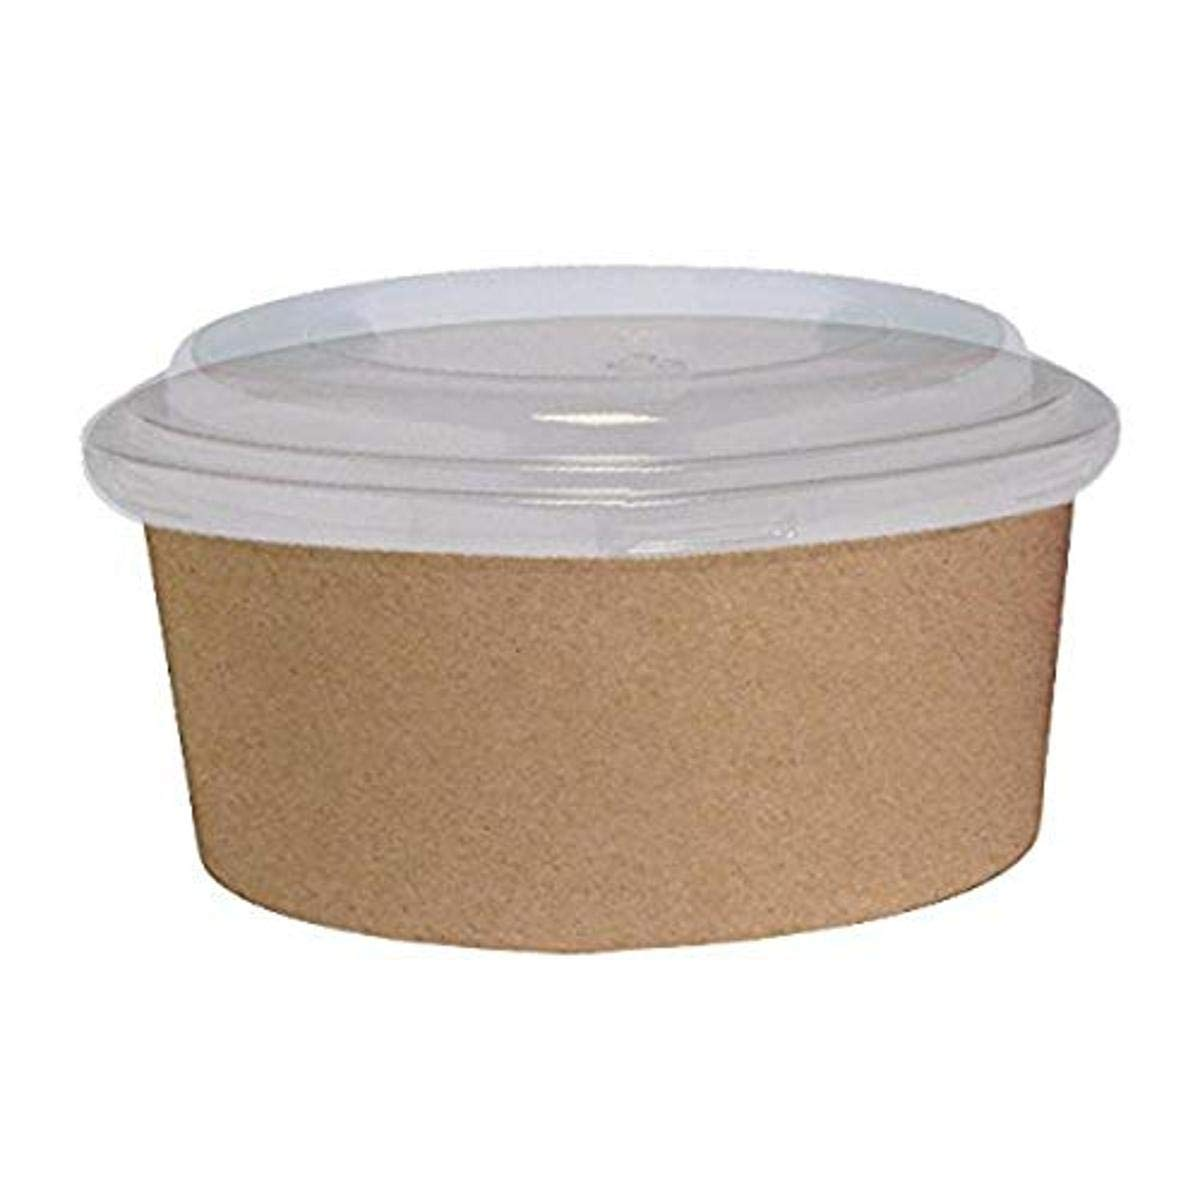 Kraft Brown Round to-Go Bucket Container with Clear Plastic Lid (Case of 25), PacknWood - Paper Food Storage Containers (38 oz, 7.25